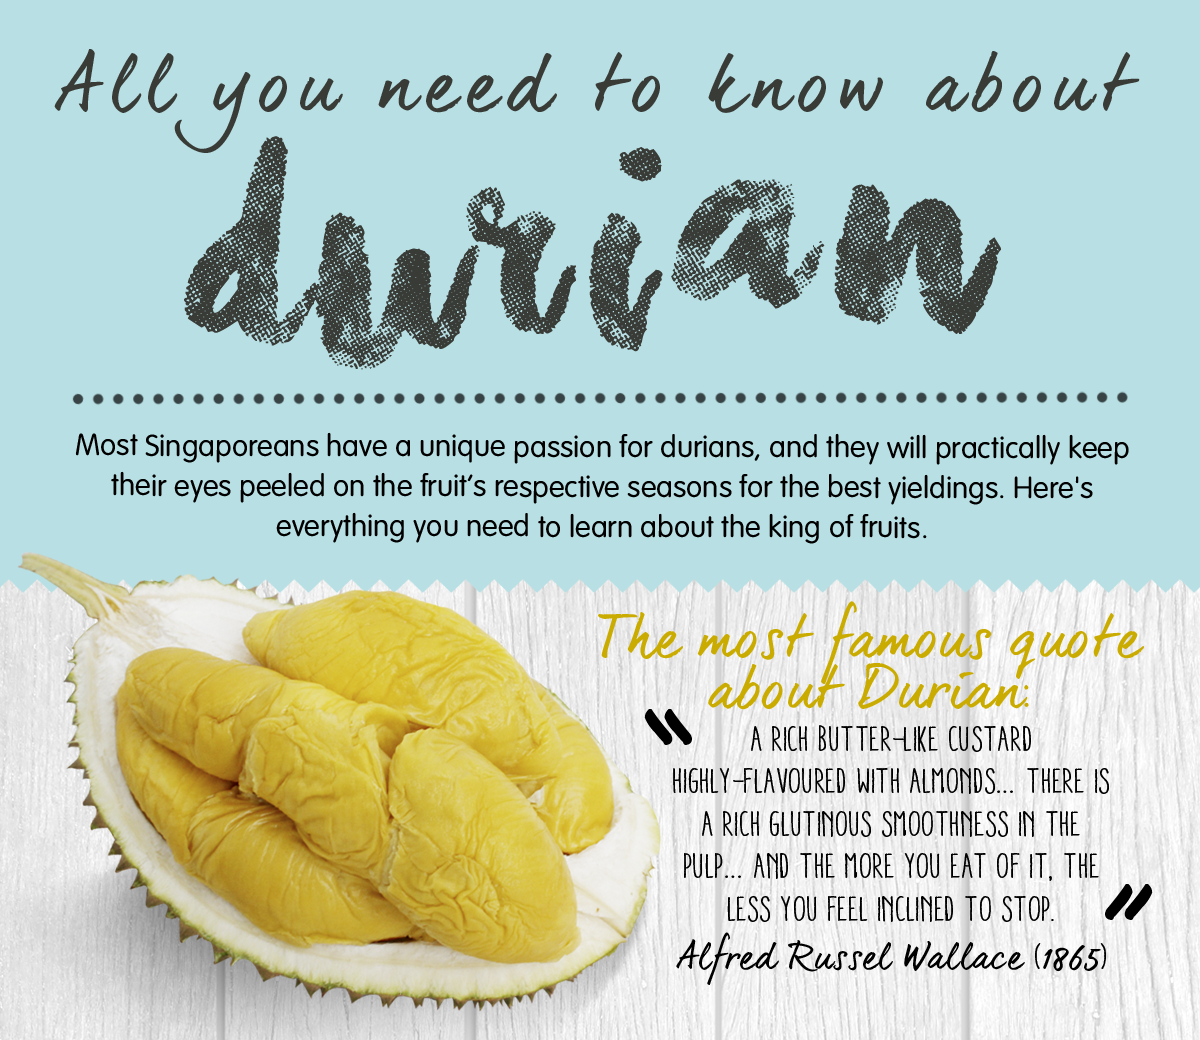 All you need to know about durian